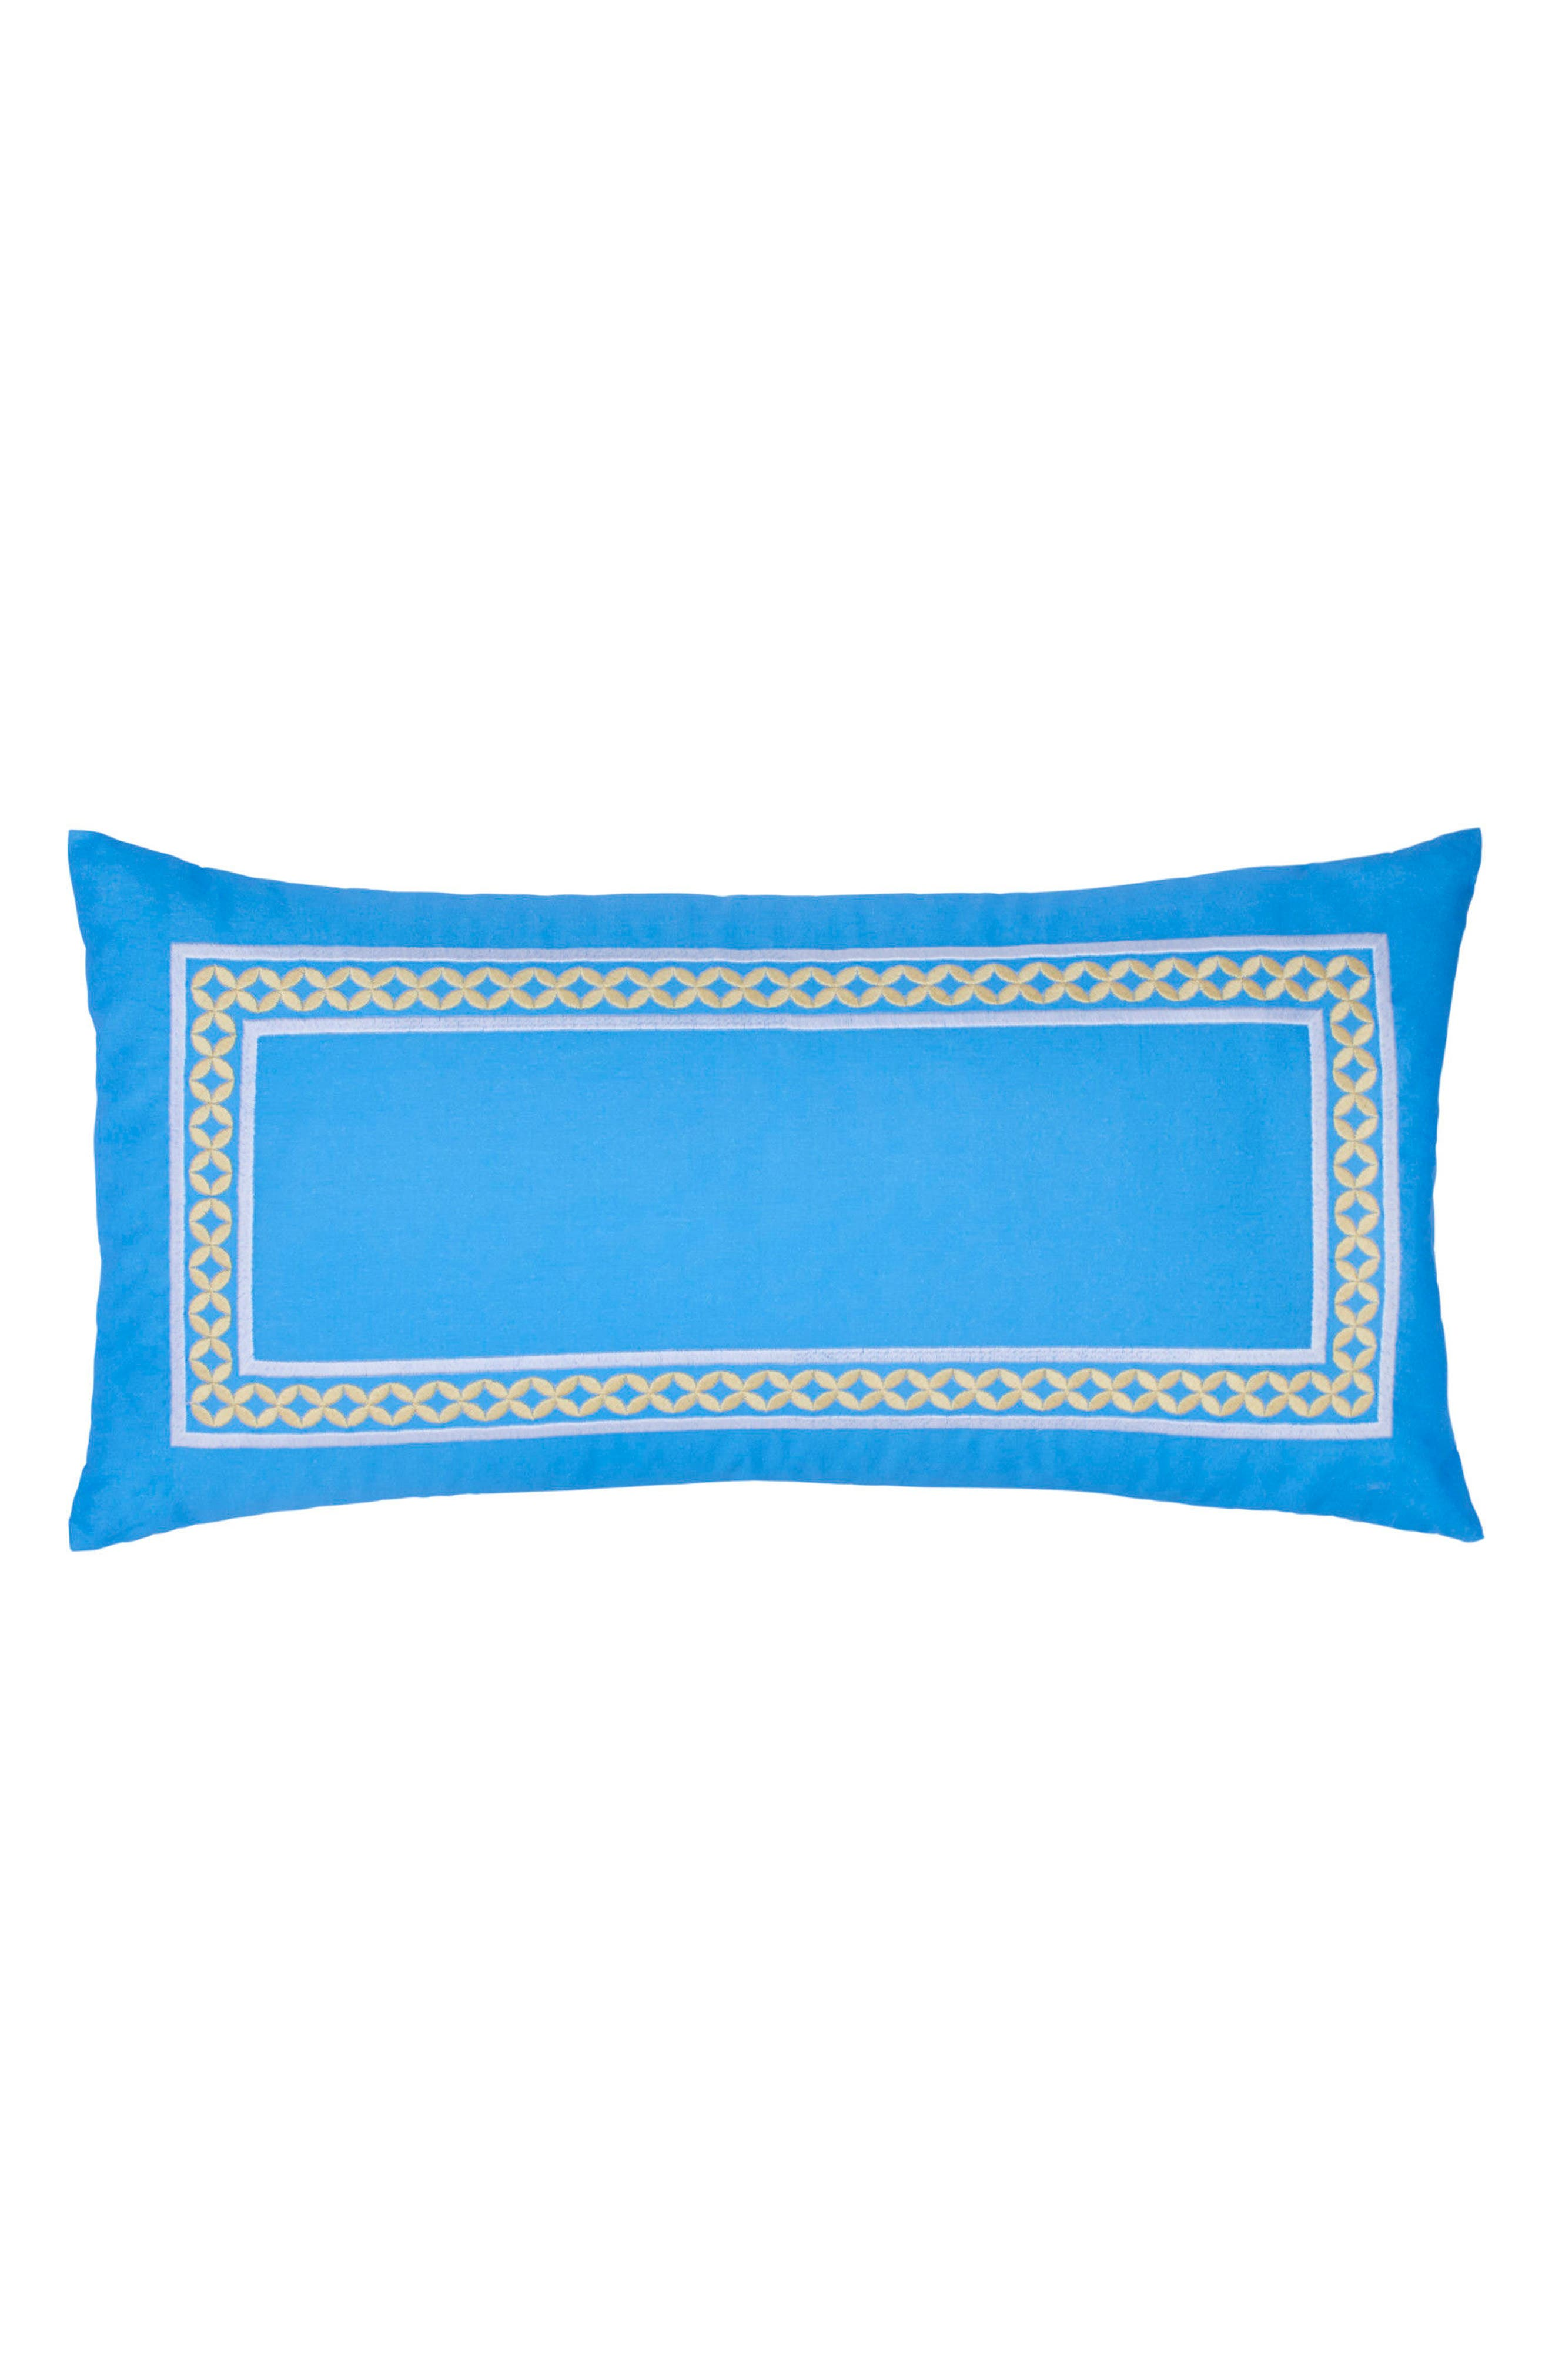 Sailgate Embroidered Border Accent Pillow,                         Main,                         color, Periwinkle